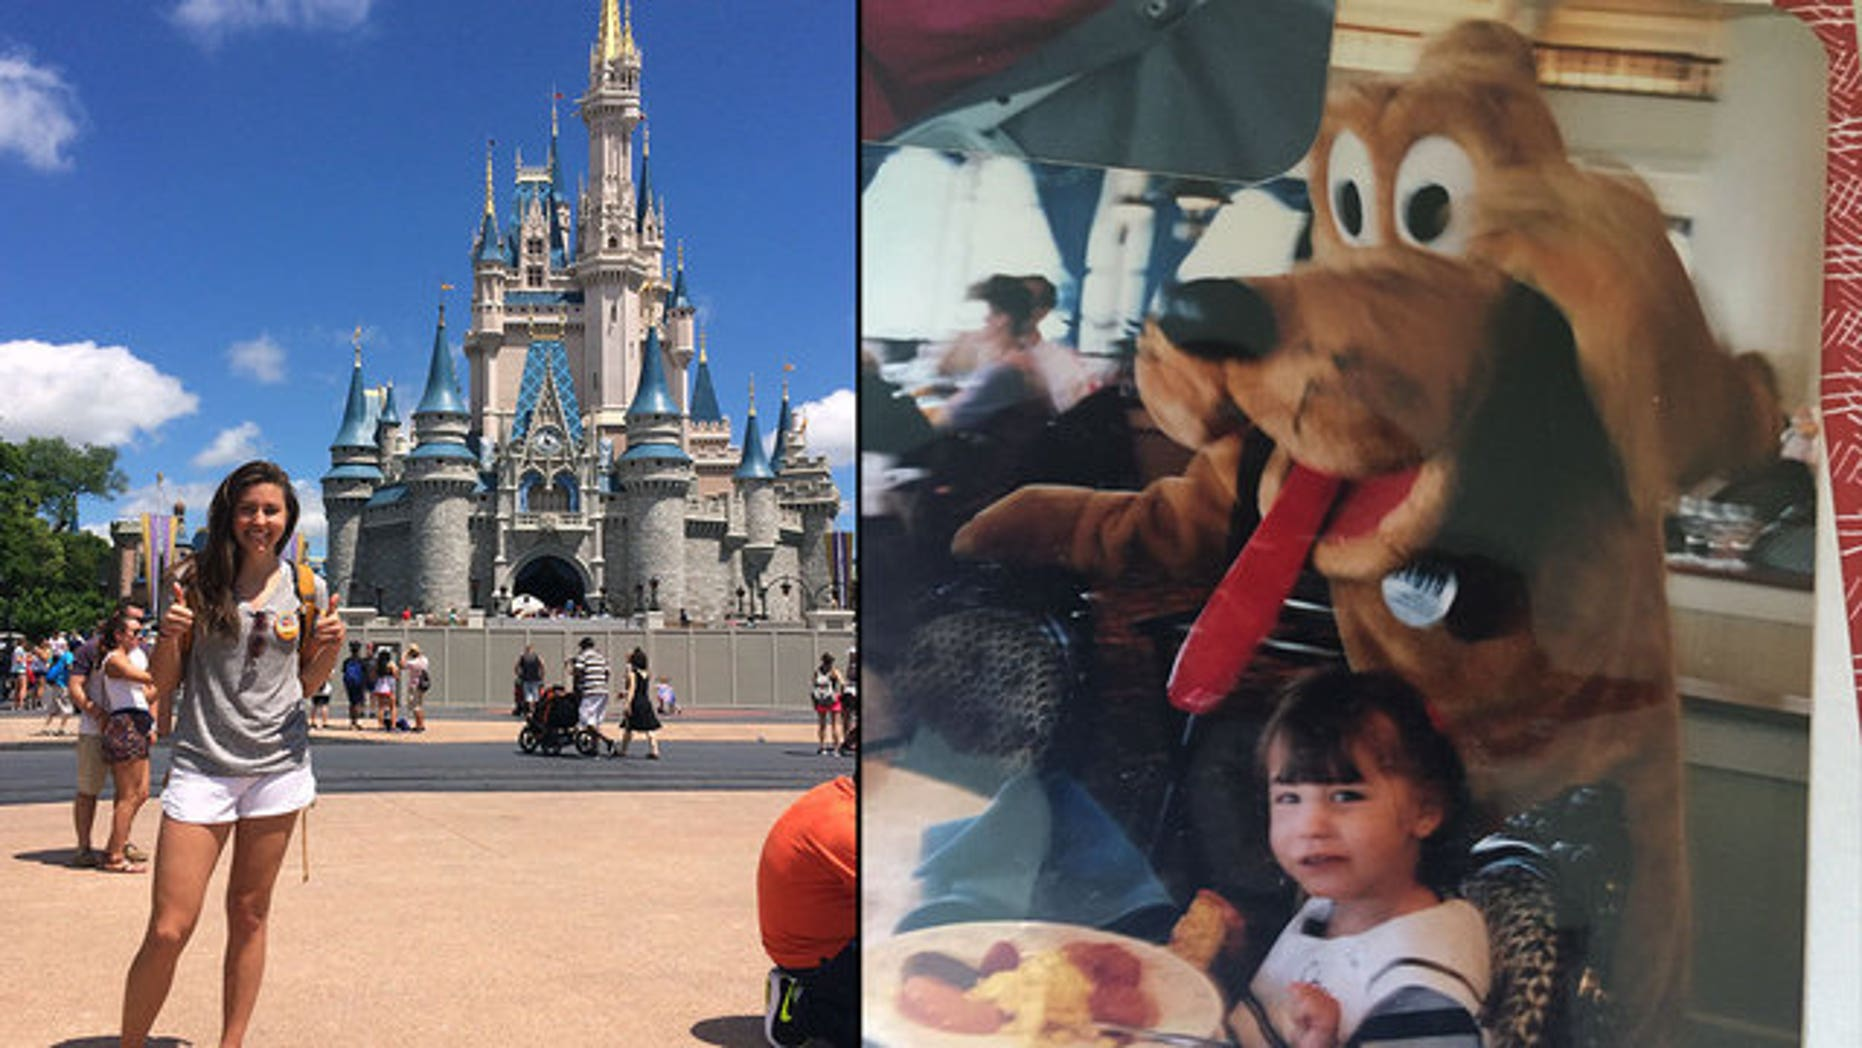 Chelsea Herline poses in front of Cinderella's Castle at Walt Disney World in April (left) and as a four-year-old with Pluto in 1994.